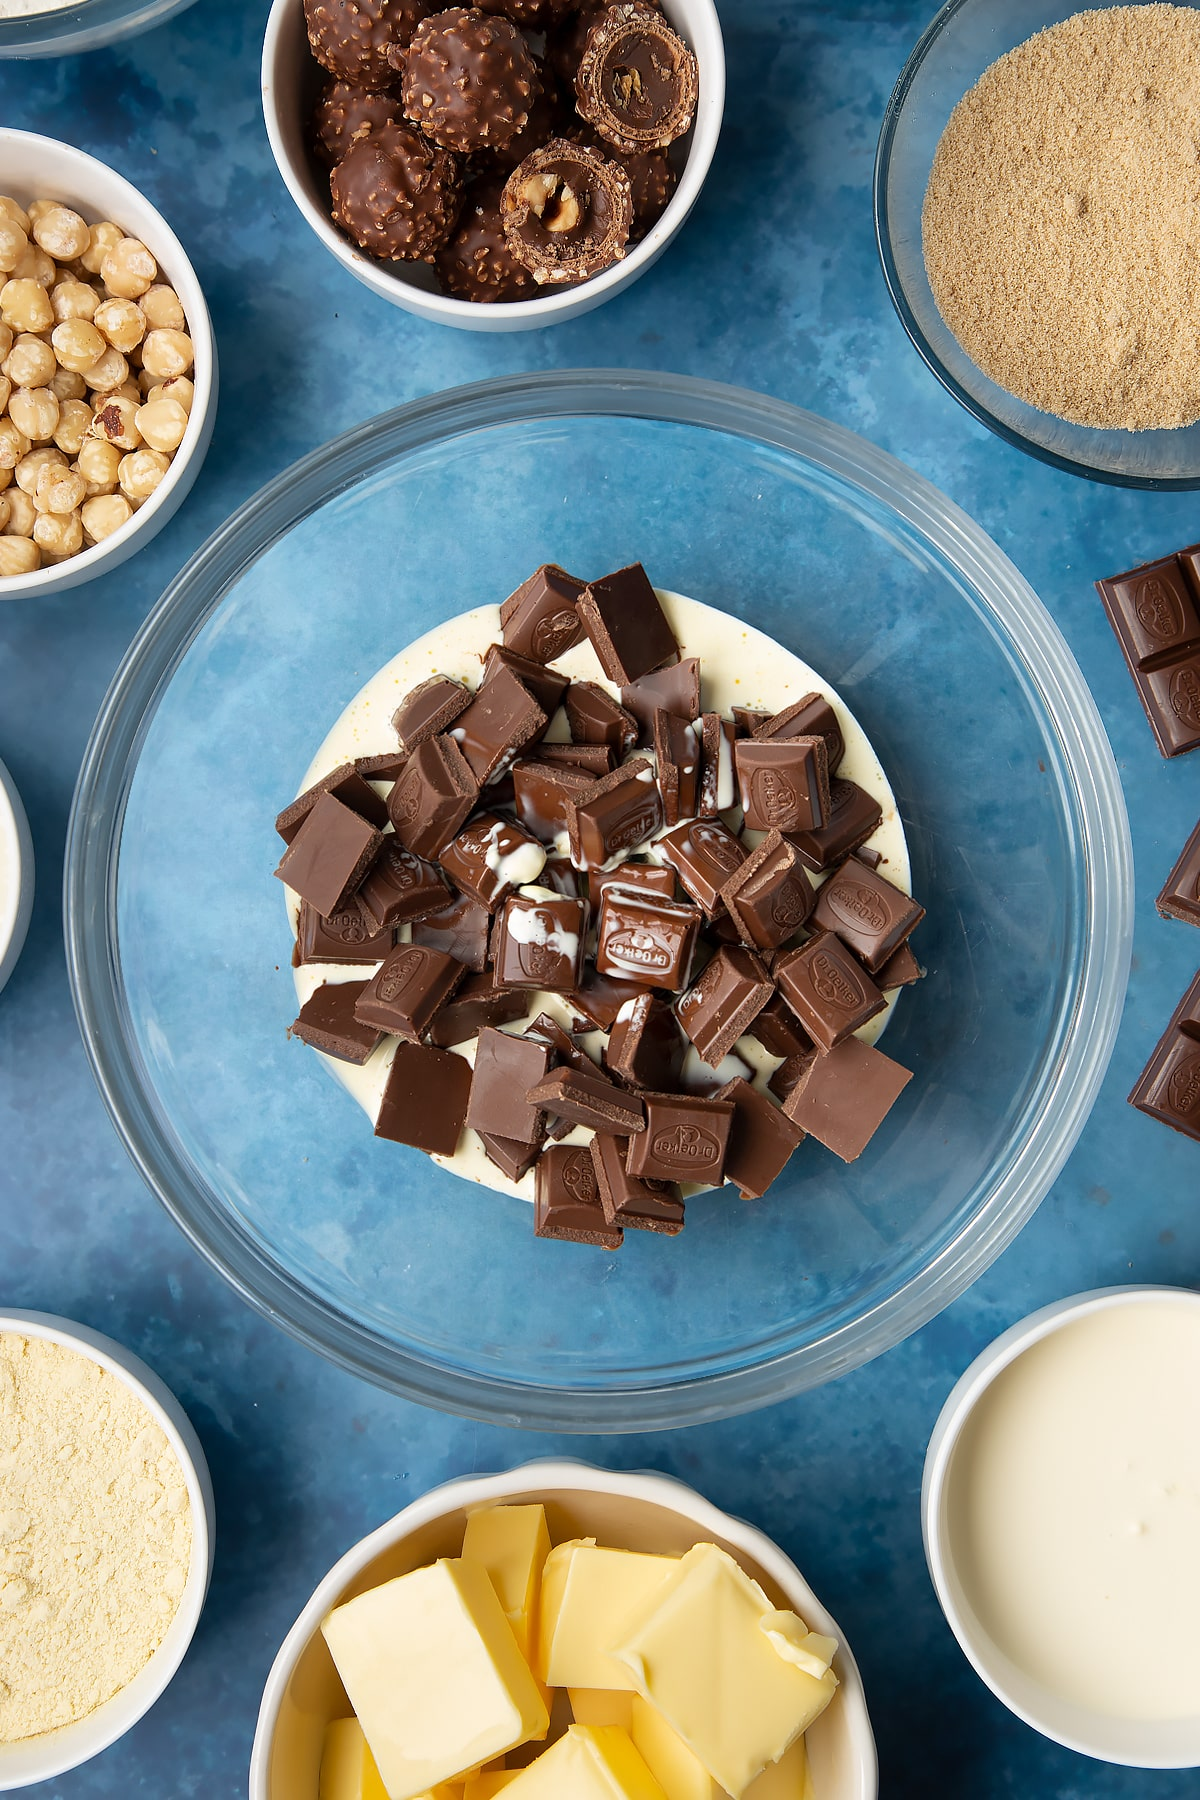 Dark chocolate and hot double cream in a glass mixing bowl. Ingredients to make a Ferrero Rocher slice surround the bowl.